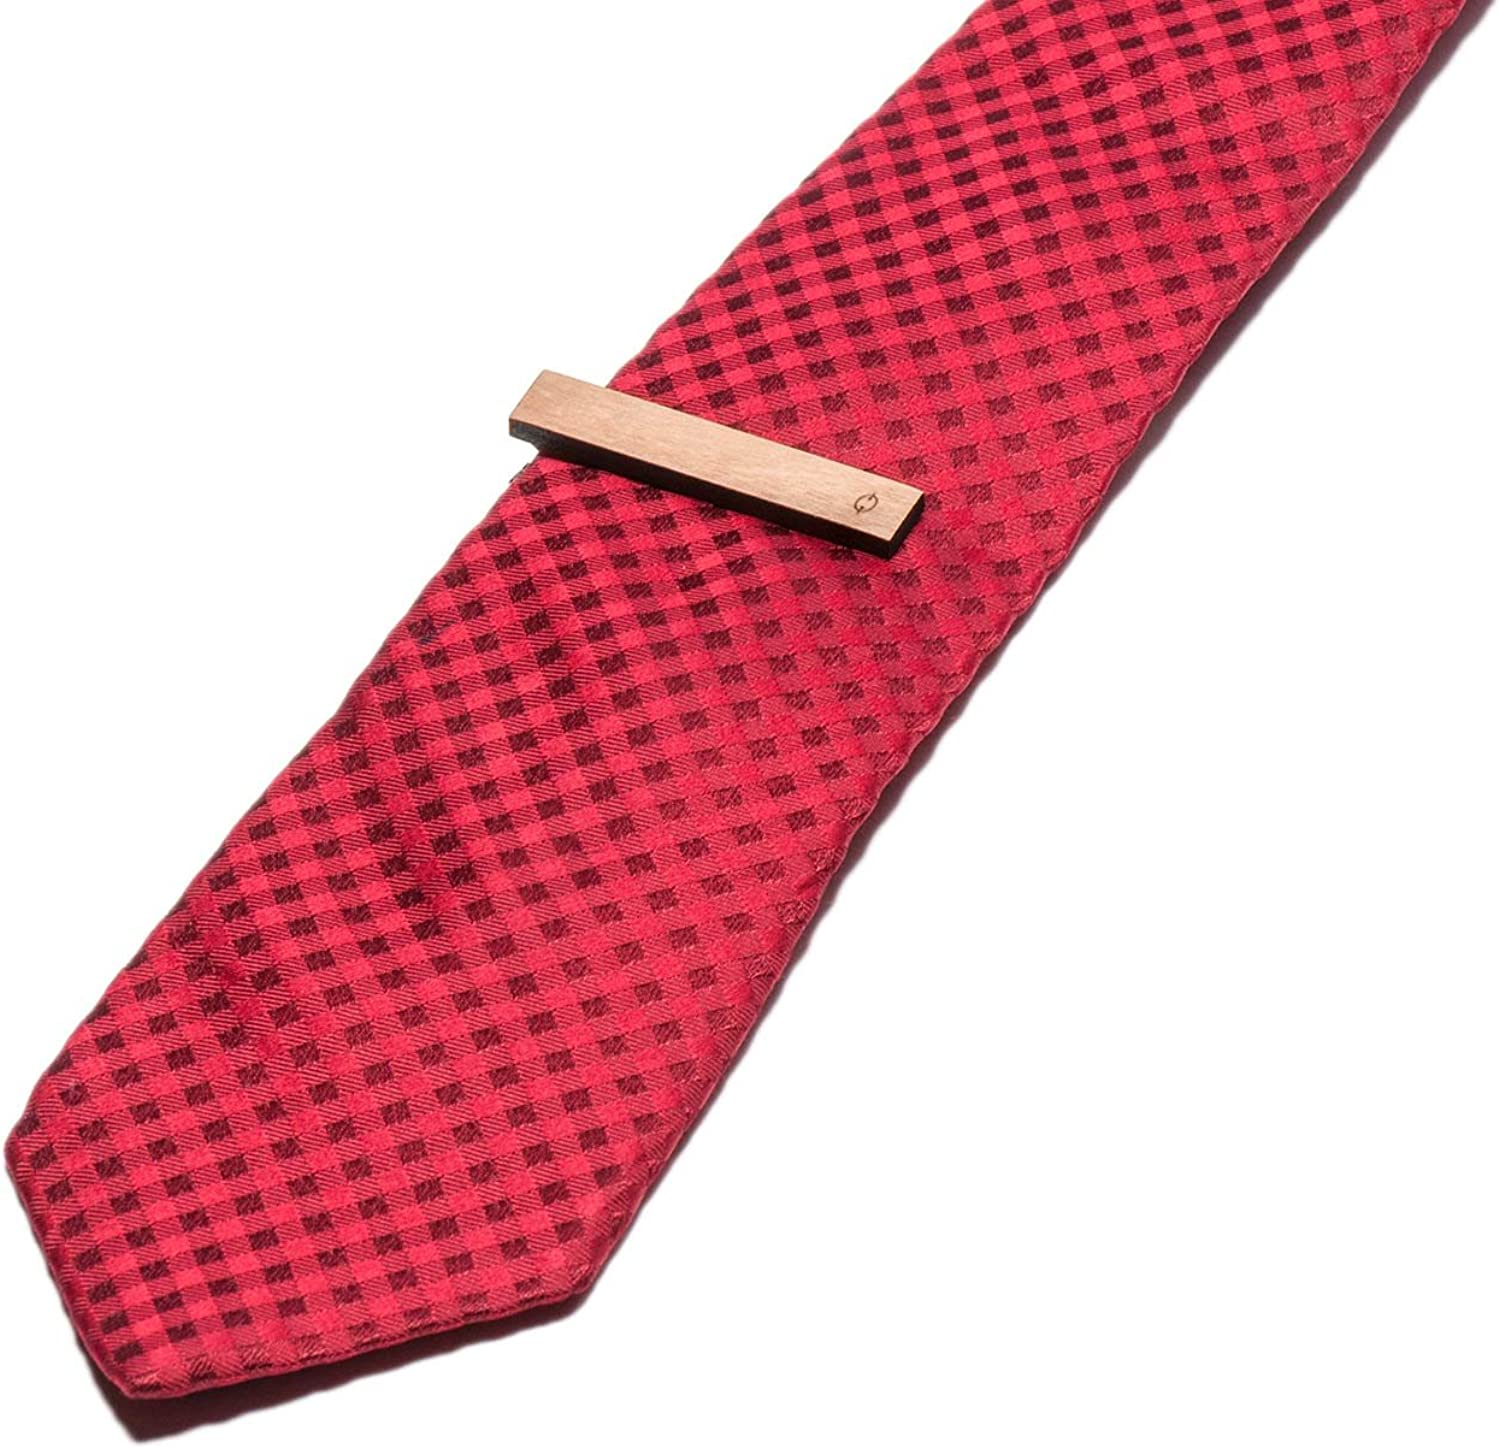 Wooden Accessories Company Wooden Tie Clips with Laser Engraved Reversible Fluid Pump Design Cherry Wood Tie Bar Engraved in The USA